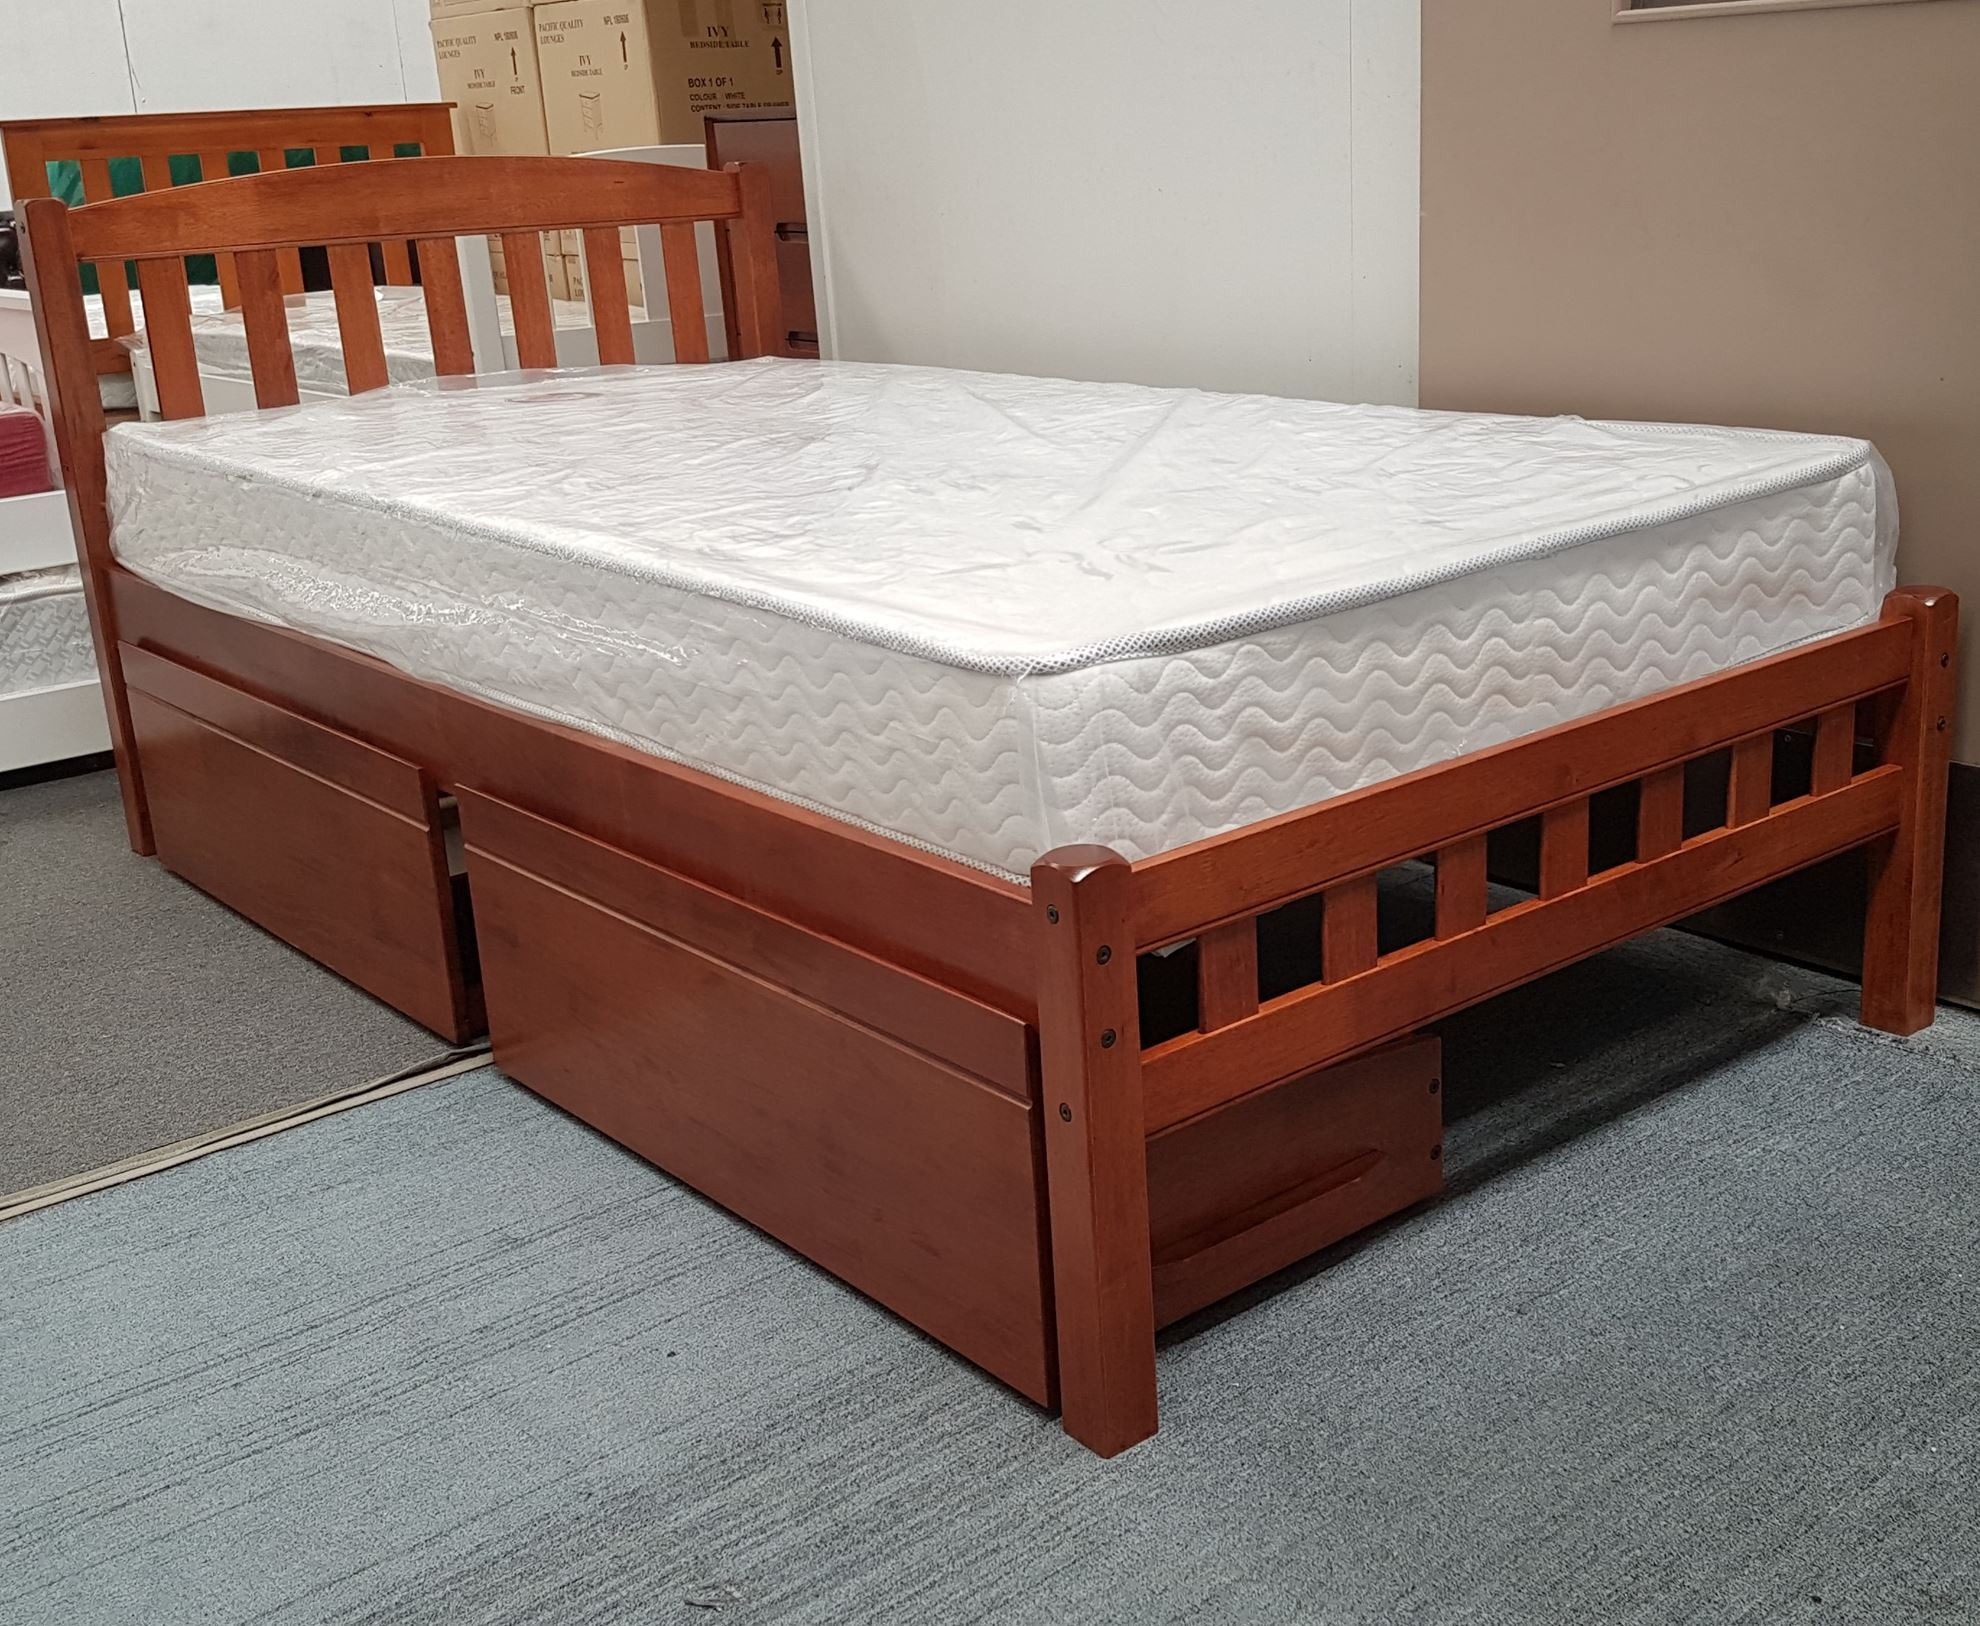 Furniture Place Miki King Single Bed With Drawers Mattress Solid - Single Bed Price